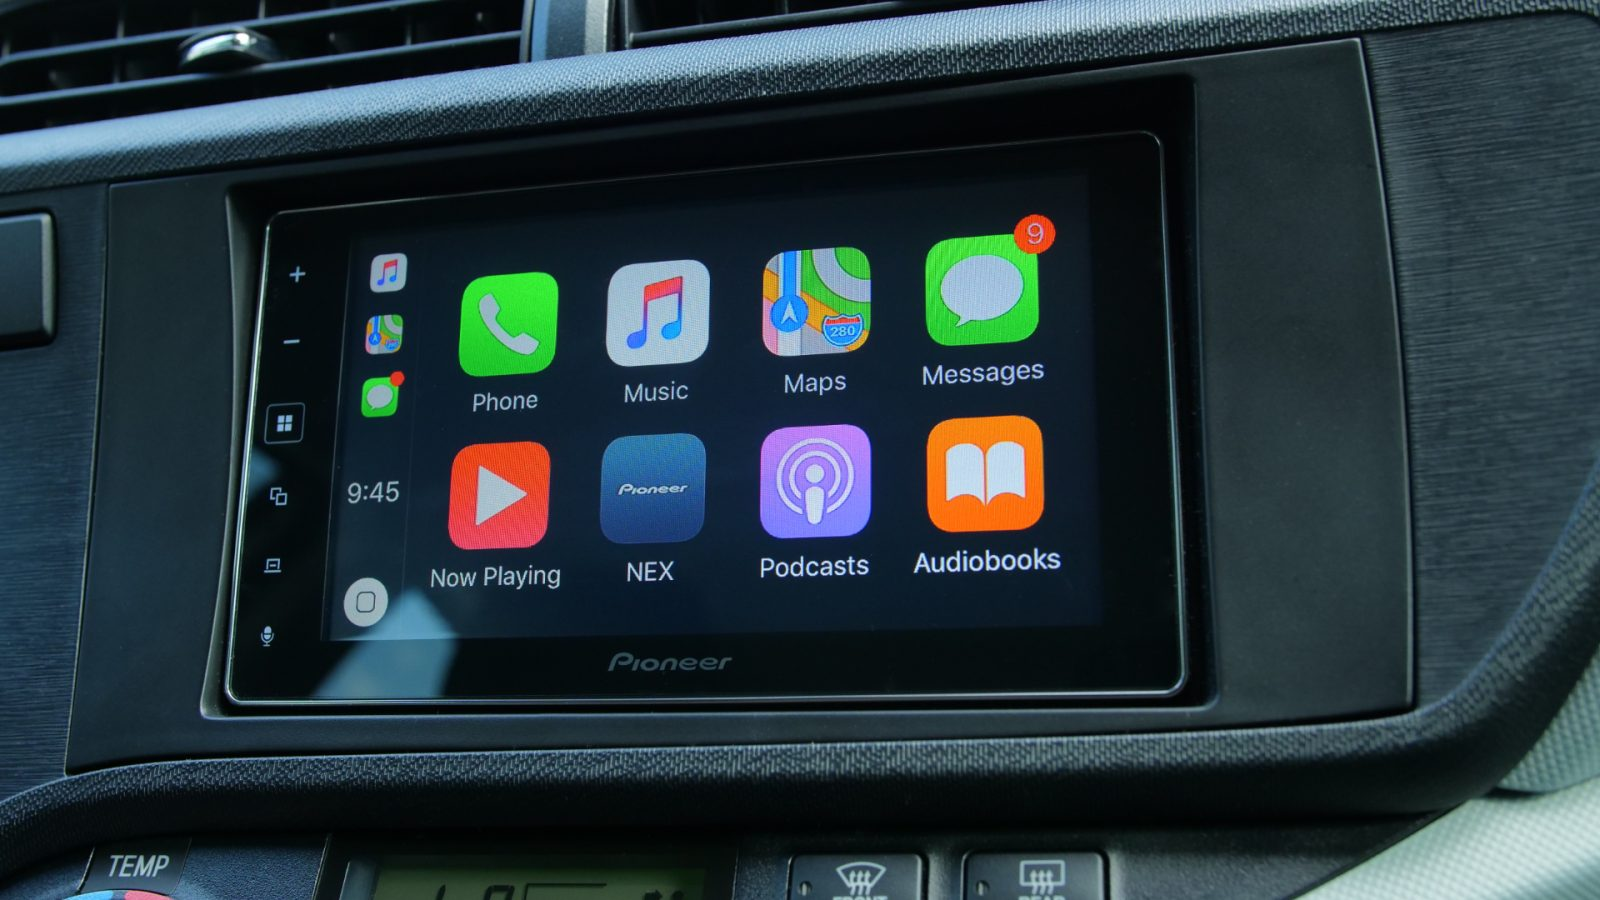 Hands On Pioneer Mvh 1400nex Offers Affordable Carplay In A Simple